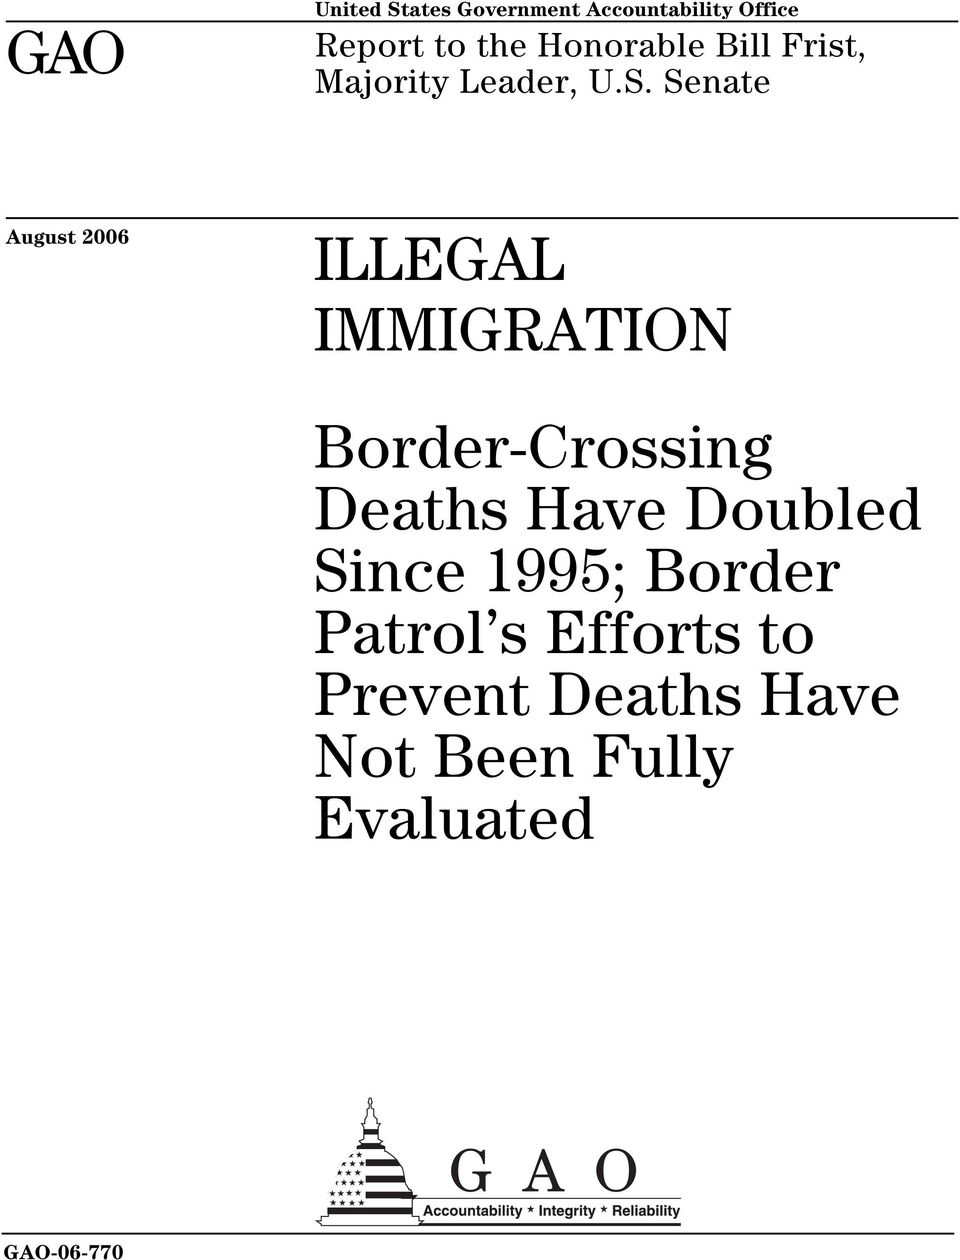 Senate August 2006 ILLEGAL IMMIGRATION Border-Crossing Deaths Have